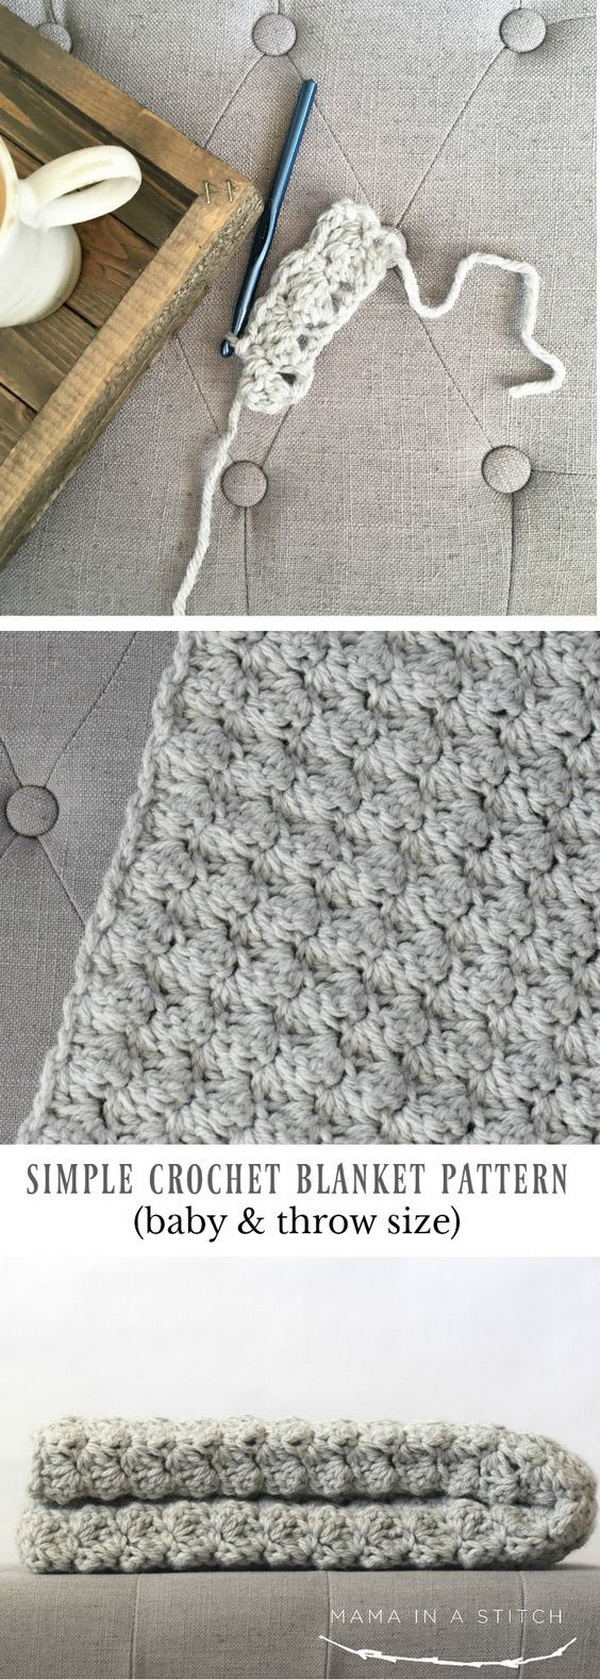 45+ Quick And Easy Crochet Blanket Patterns For Beginners